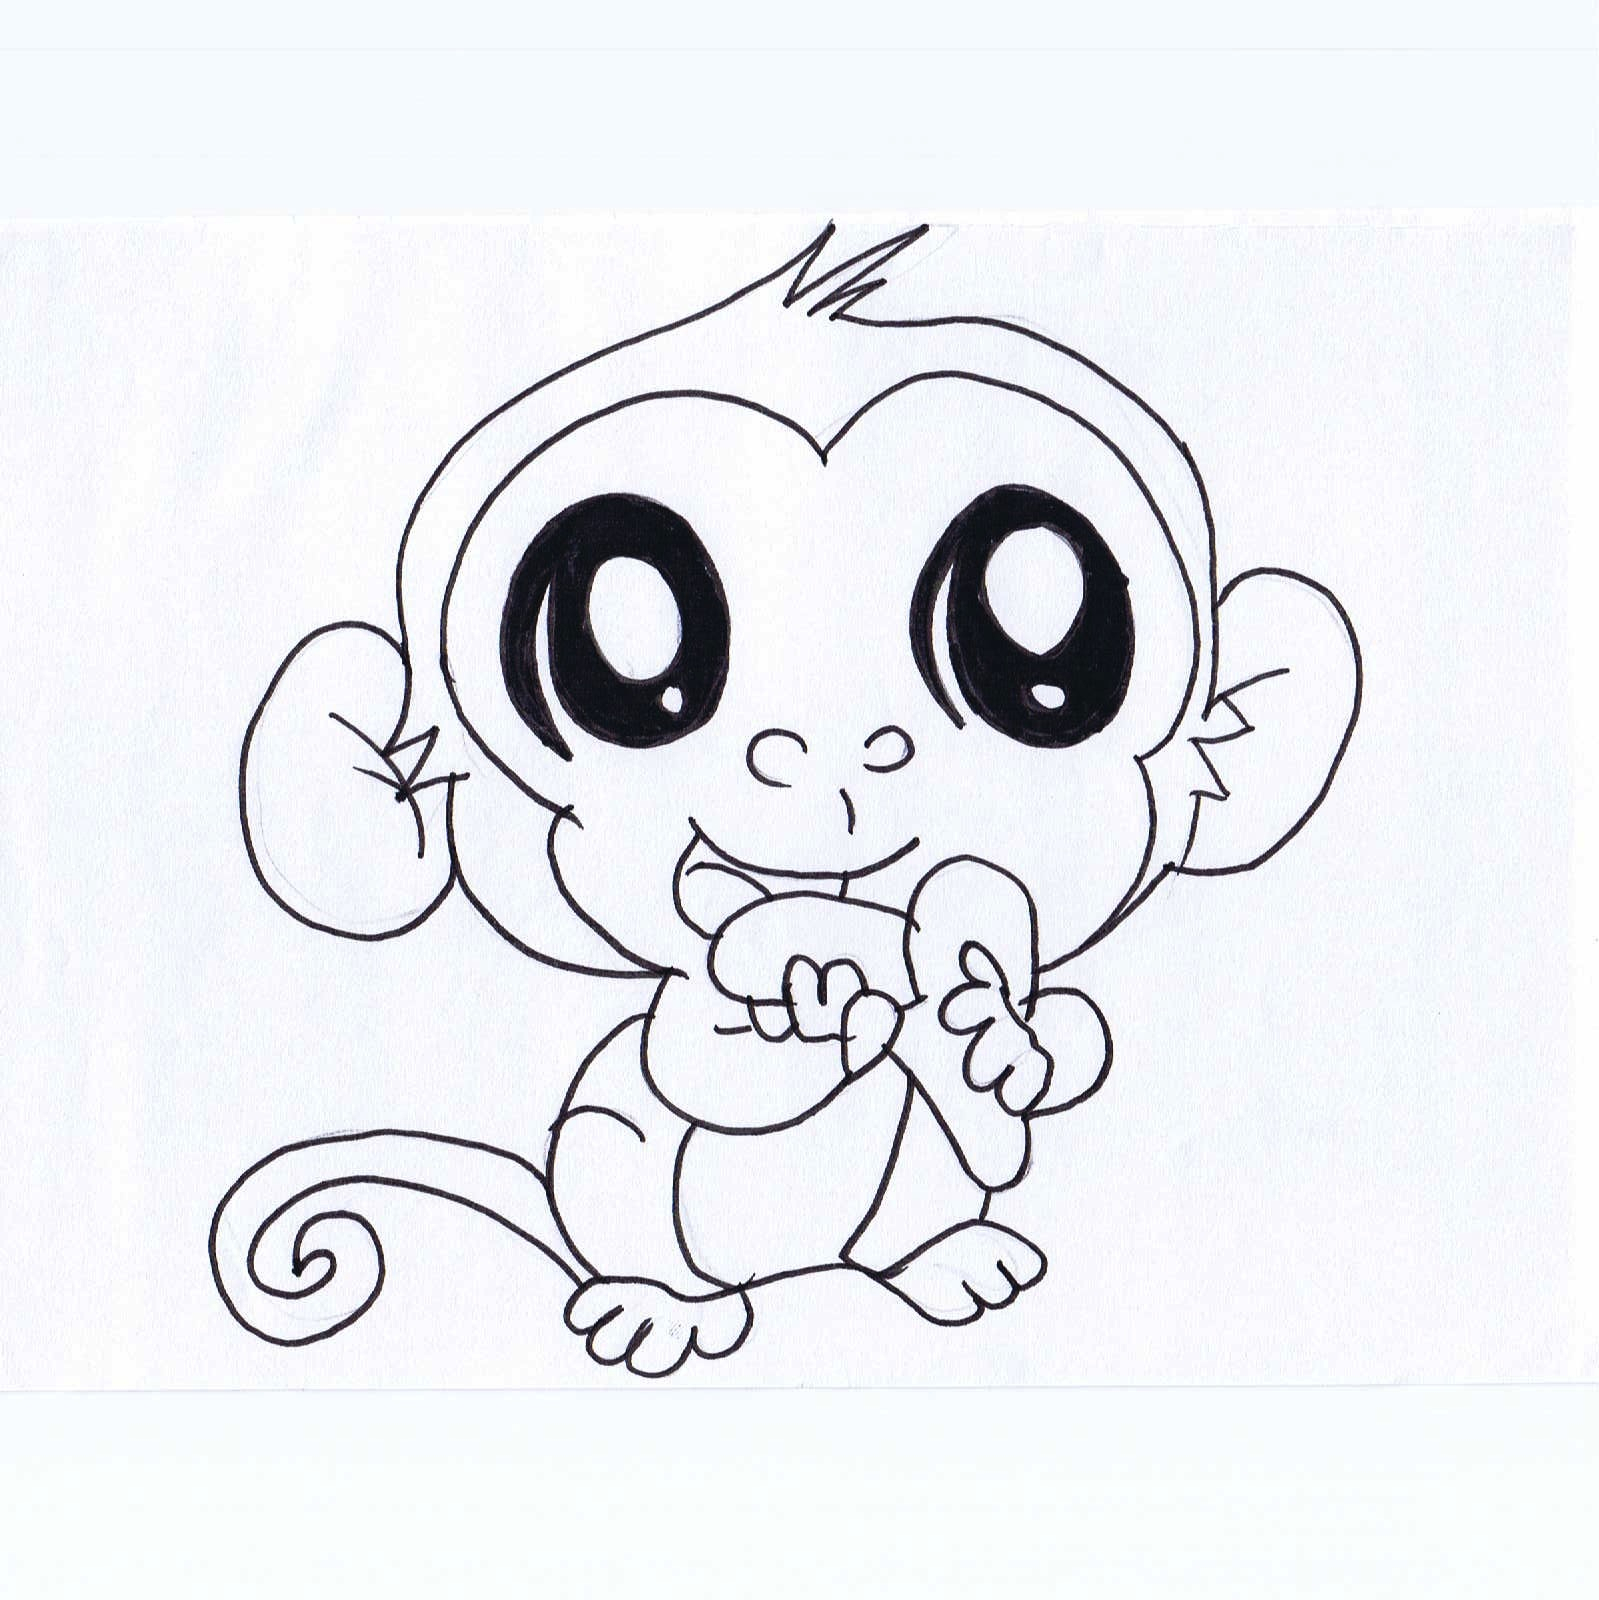 1599x1600 Cute Drawings Of Monkeys Cute Baby Monkey Drawings Cute Baby